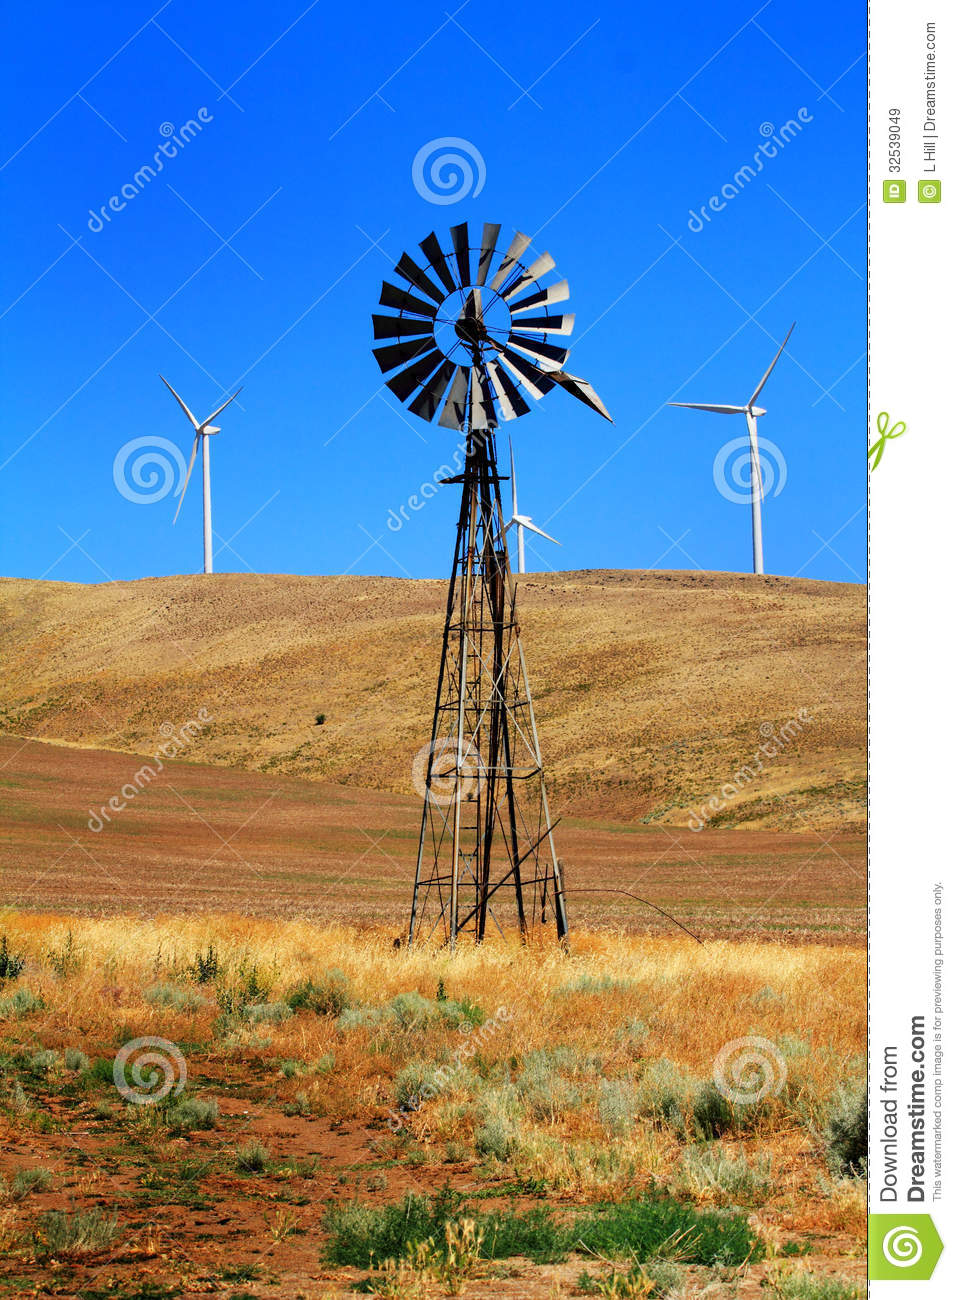 New Pioneer Travel >> Old And New Dependable Energy Royalty Free Stock Images - Image: 32539049